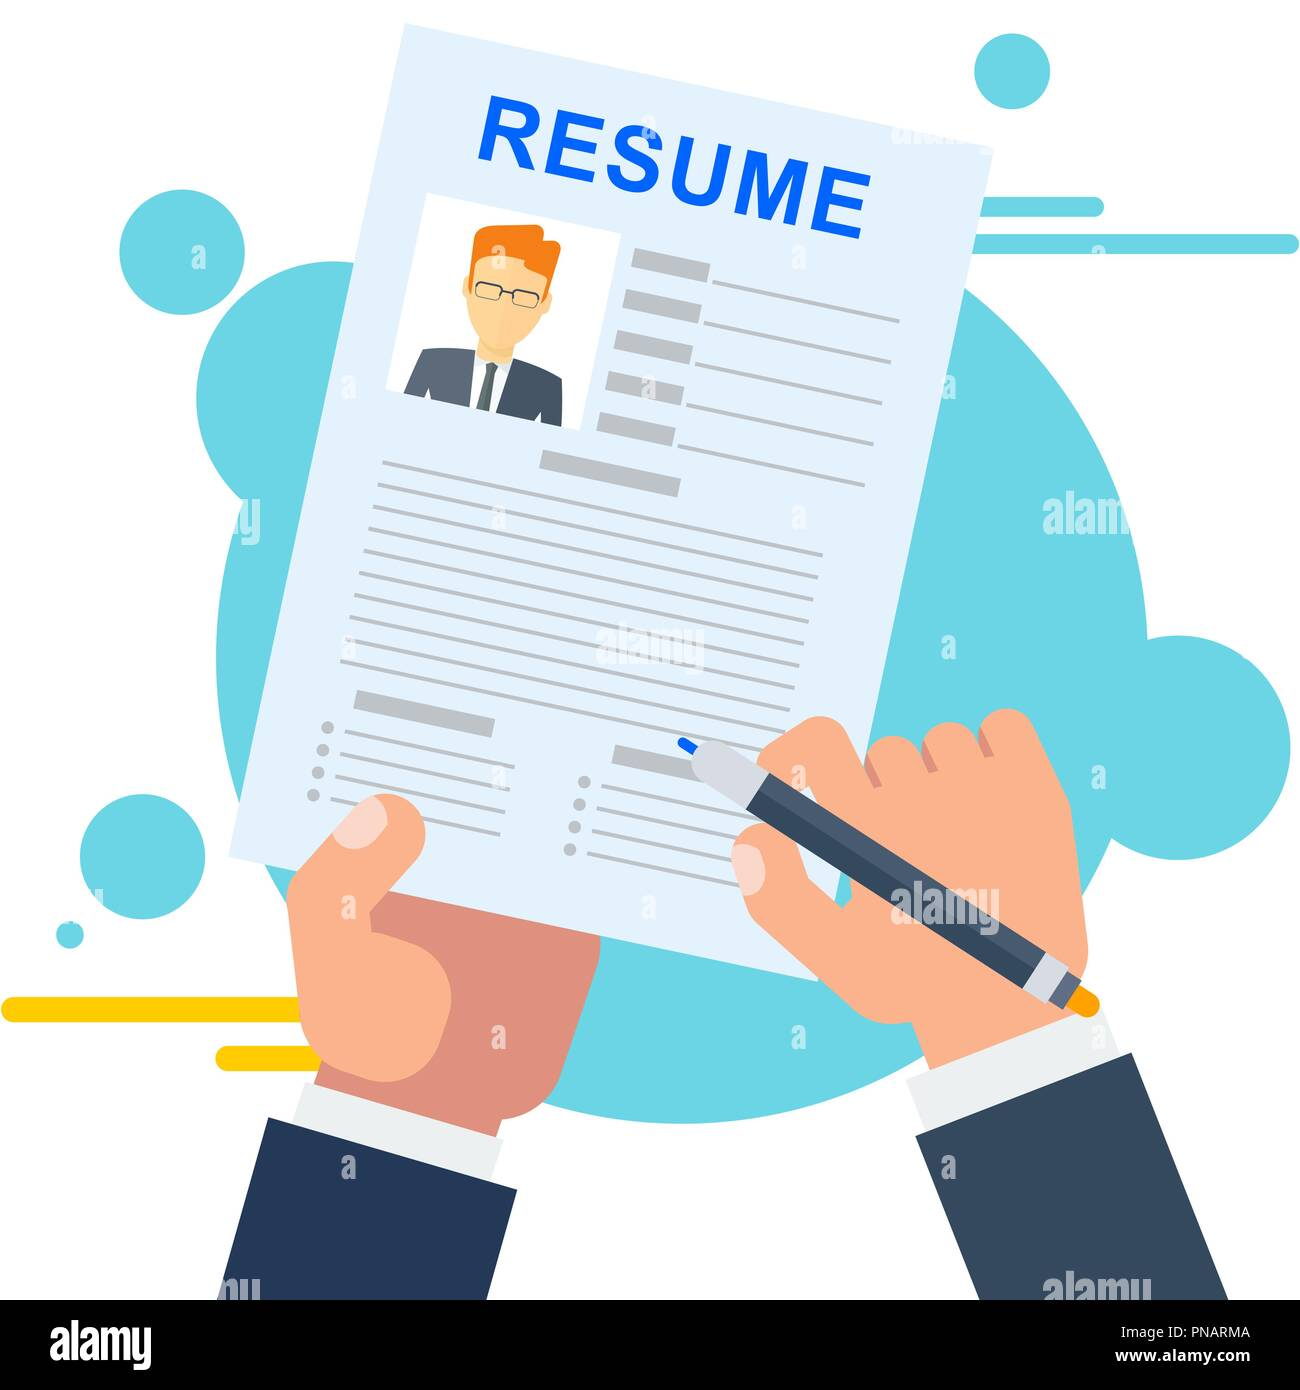 Resume of potential employee. Job seekers and vacancies, hiring and recruiting - Stock Image